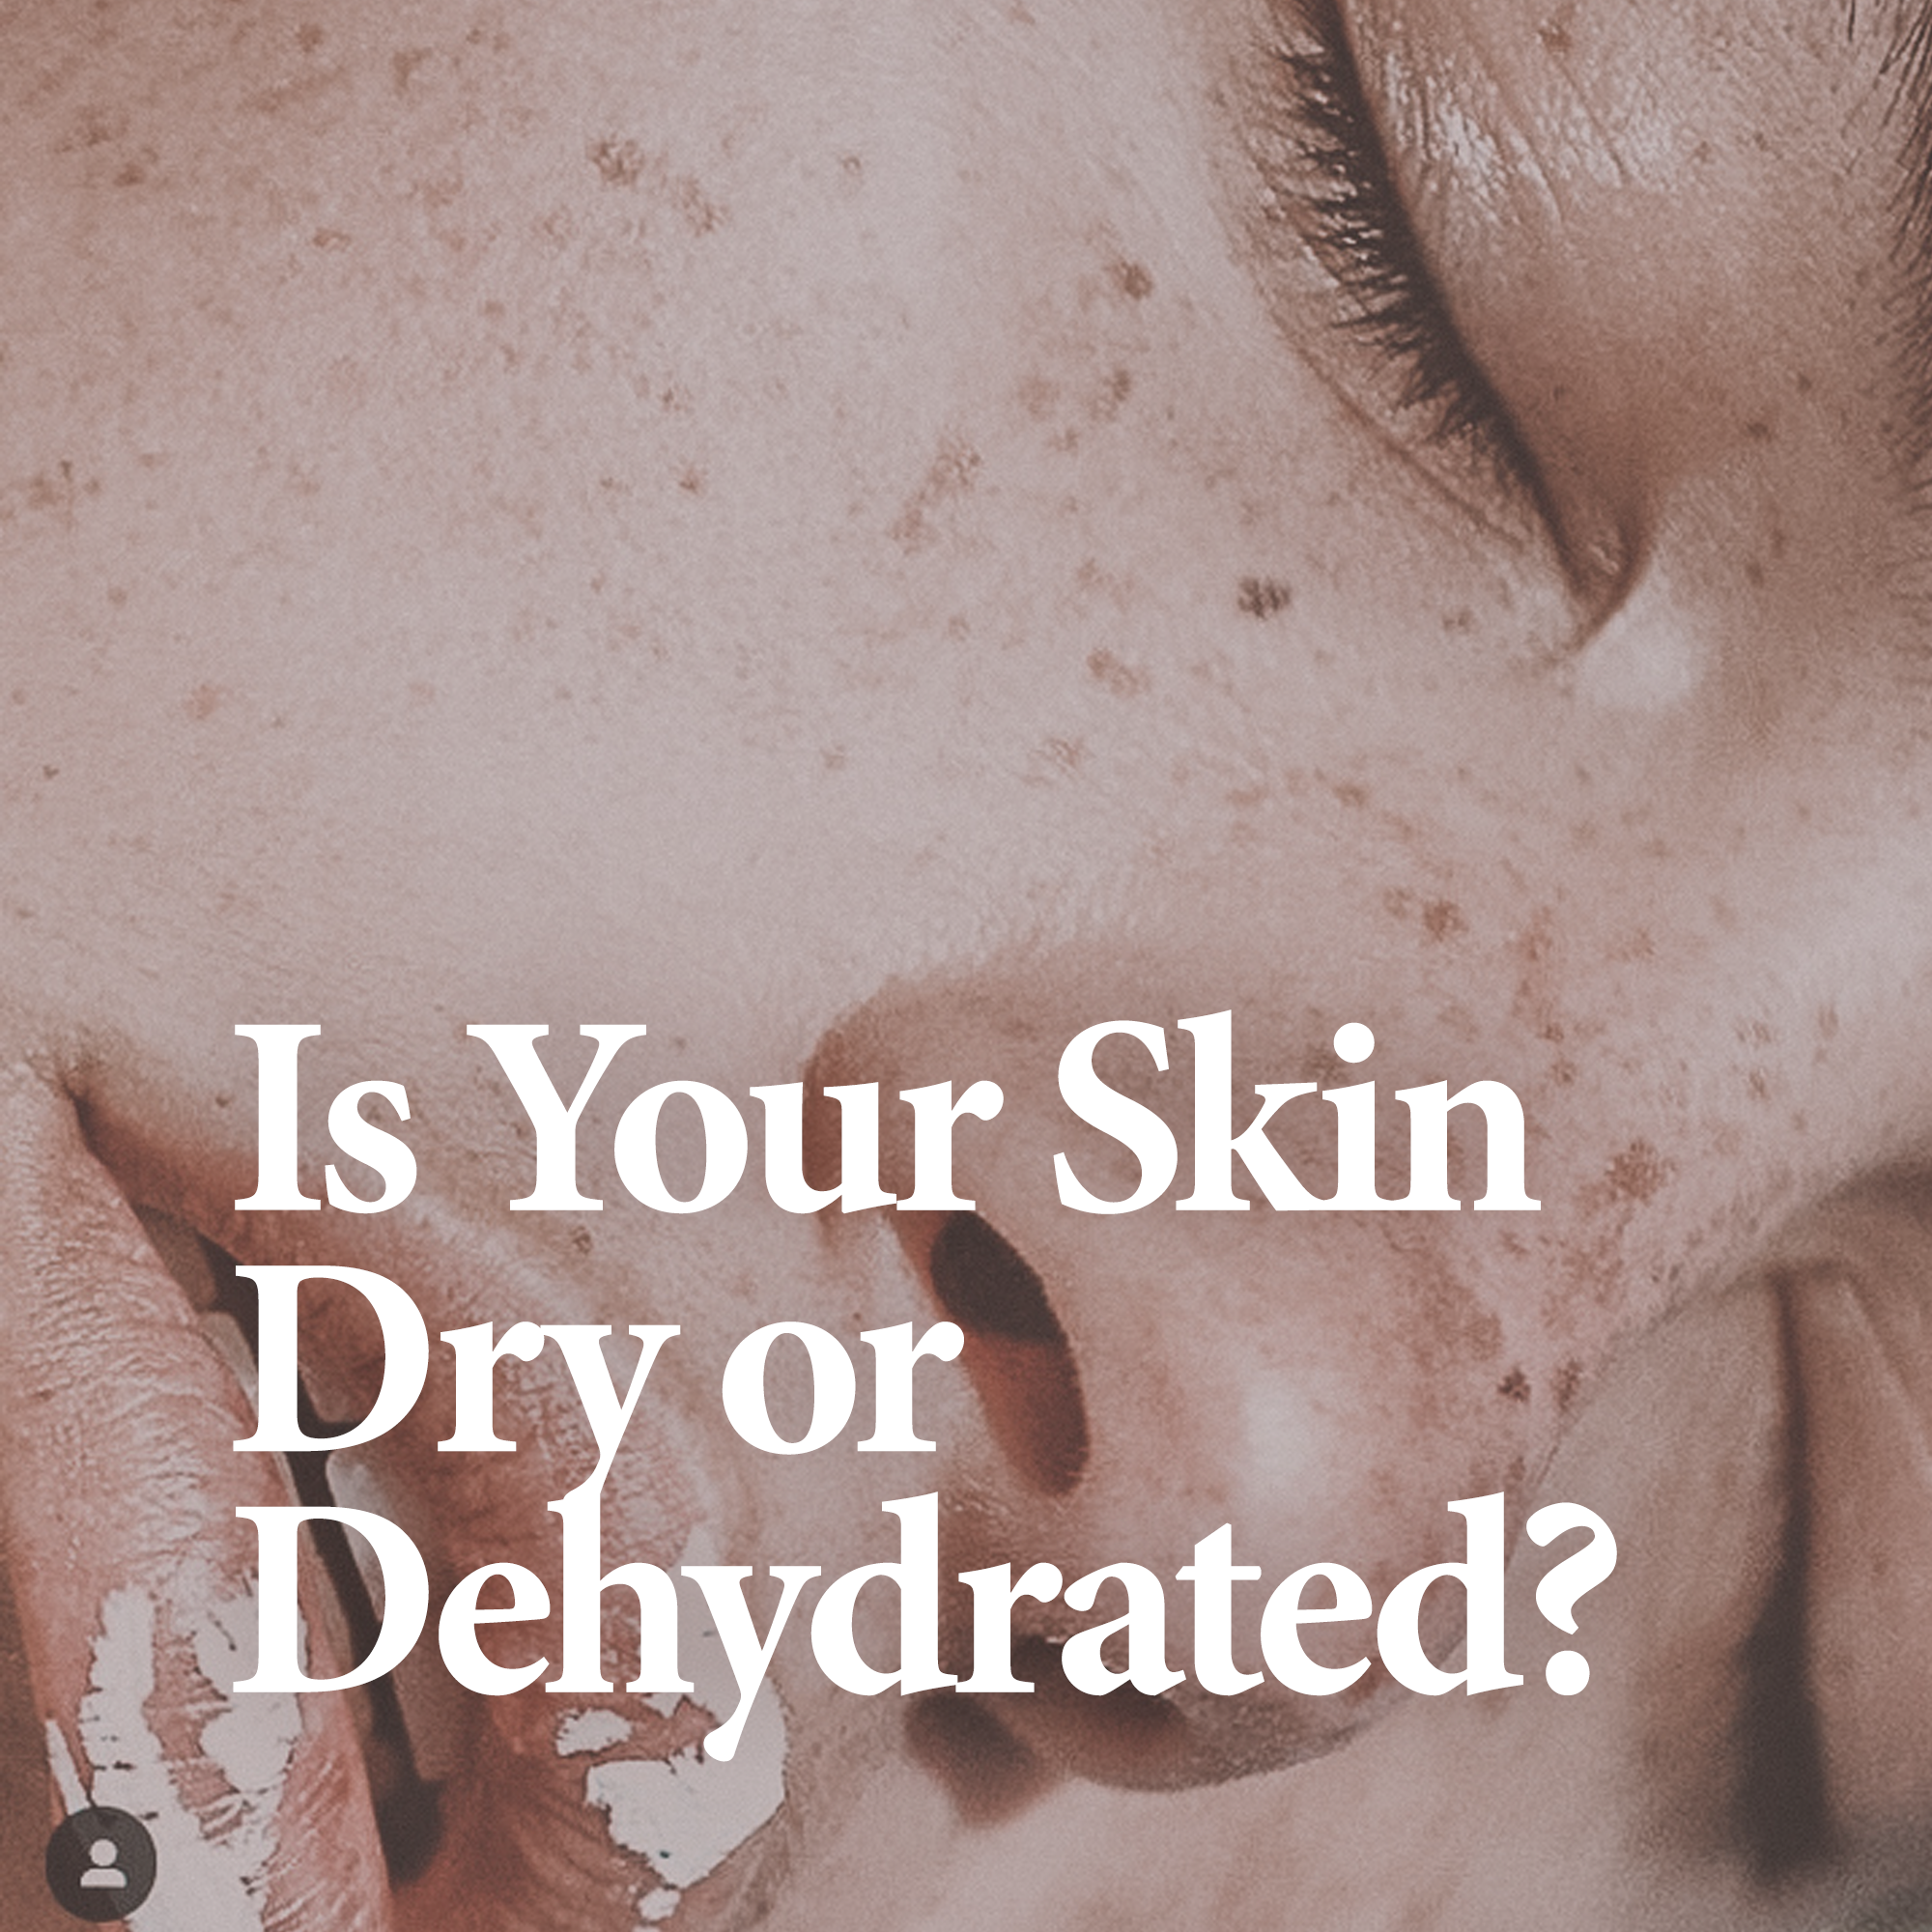 RELATED Discover the difference of having dry skin to having a dehydrated skin concern.